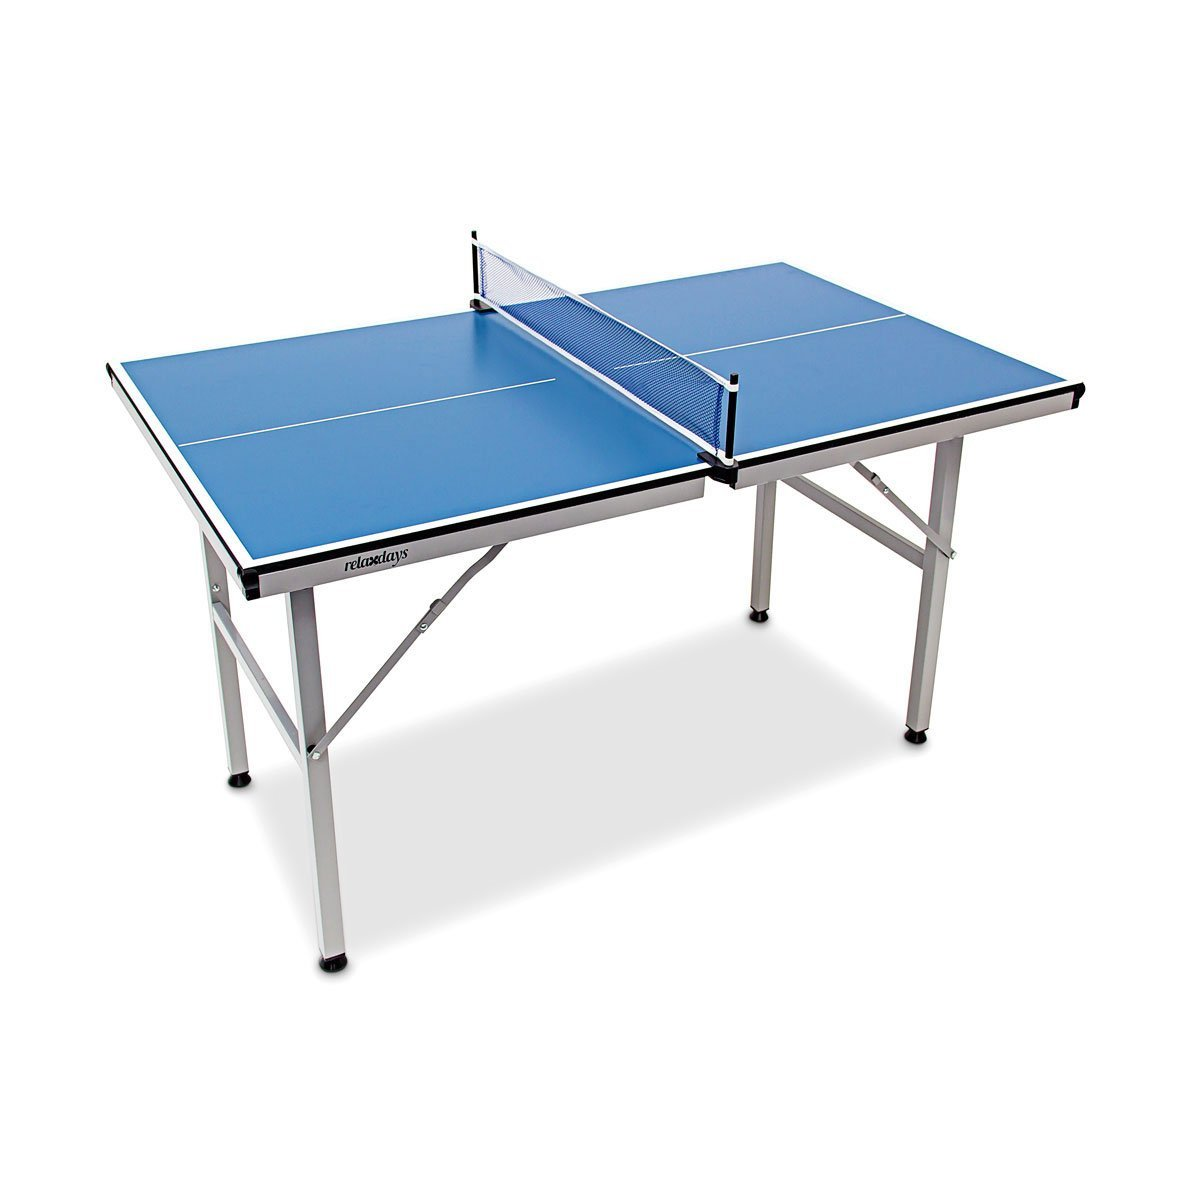 Relaxdays Table Tennis Table Midi 125 x 75 x 75 cm, Ping Pong Table for Indoors and Outdoors with Folding Legs and Net, Blue 10019101